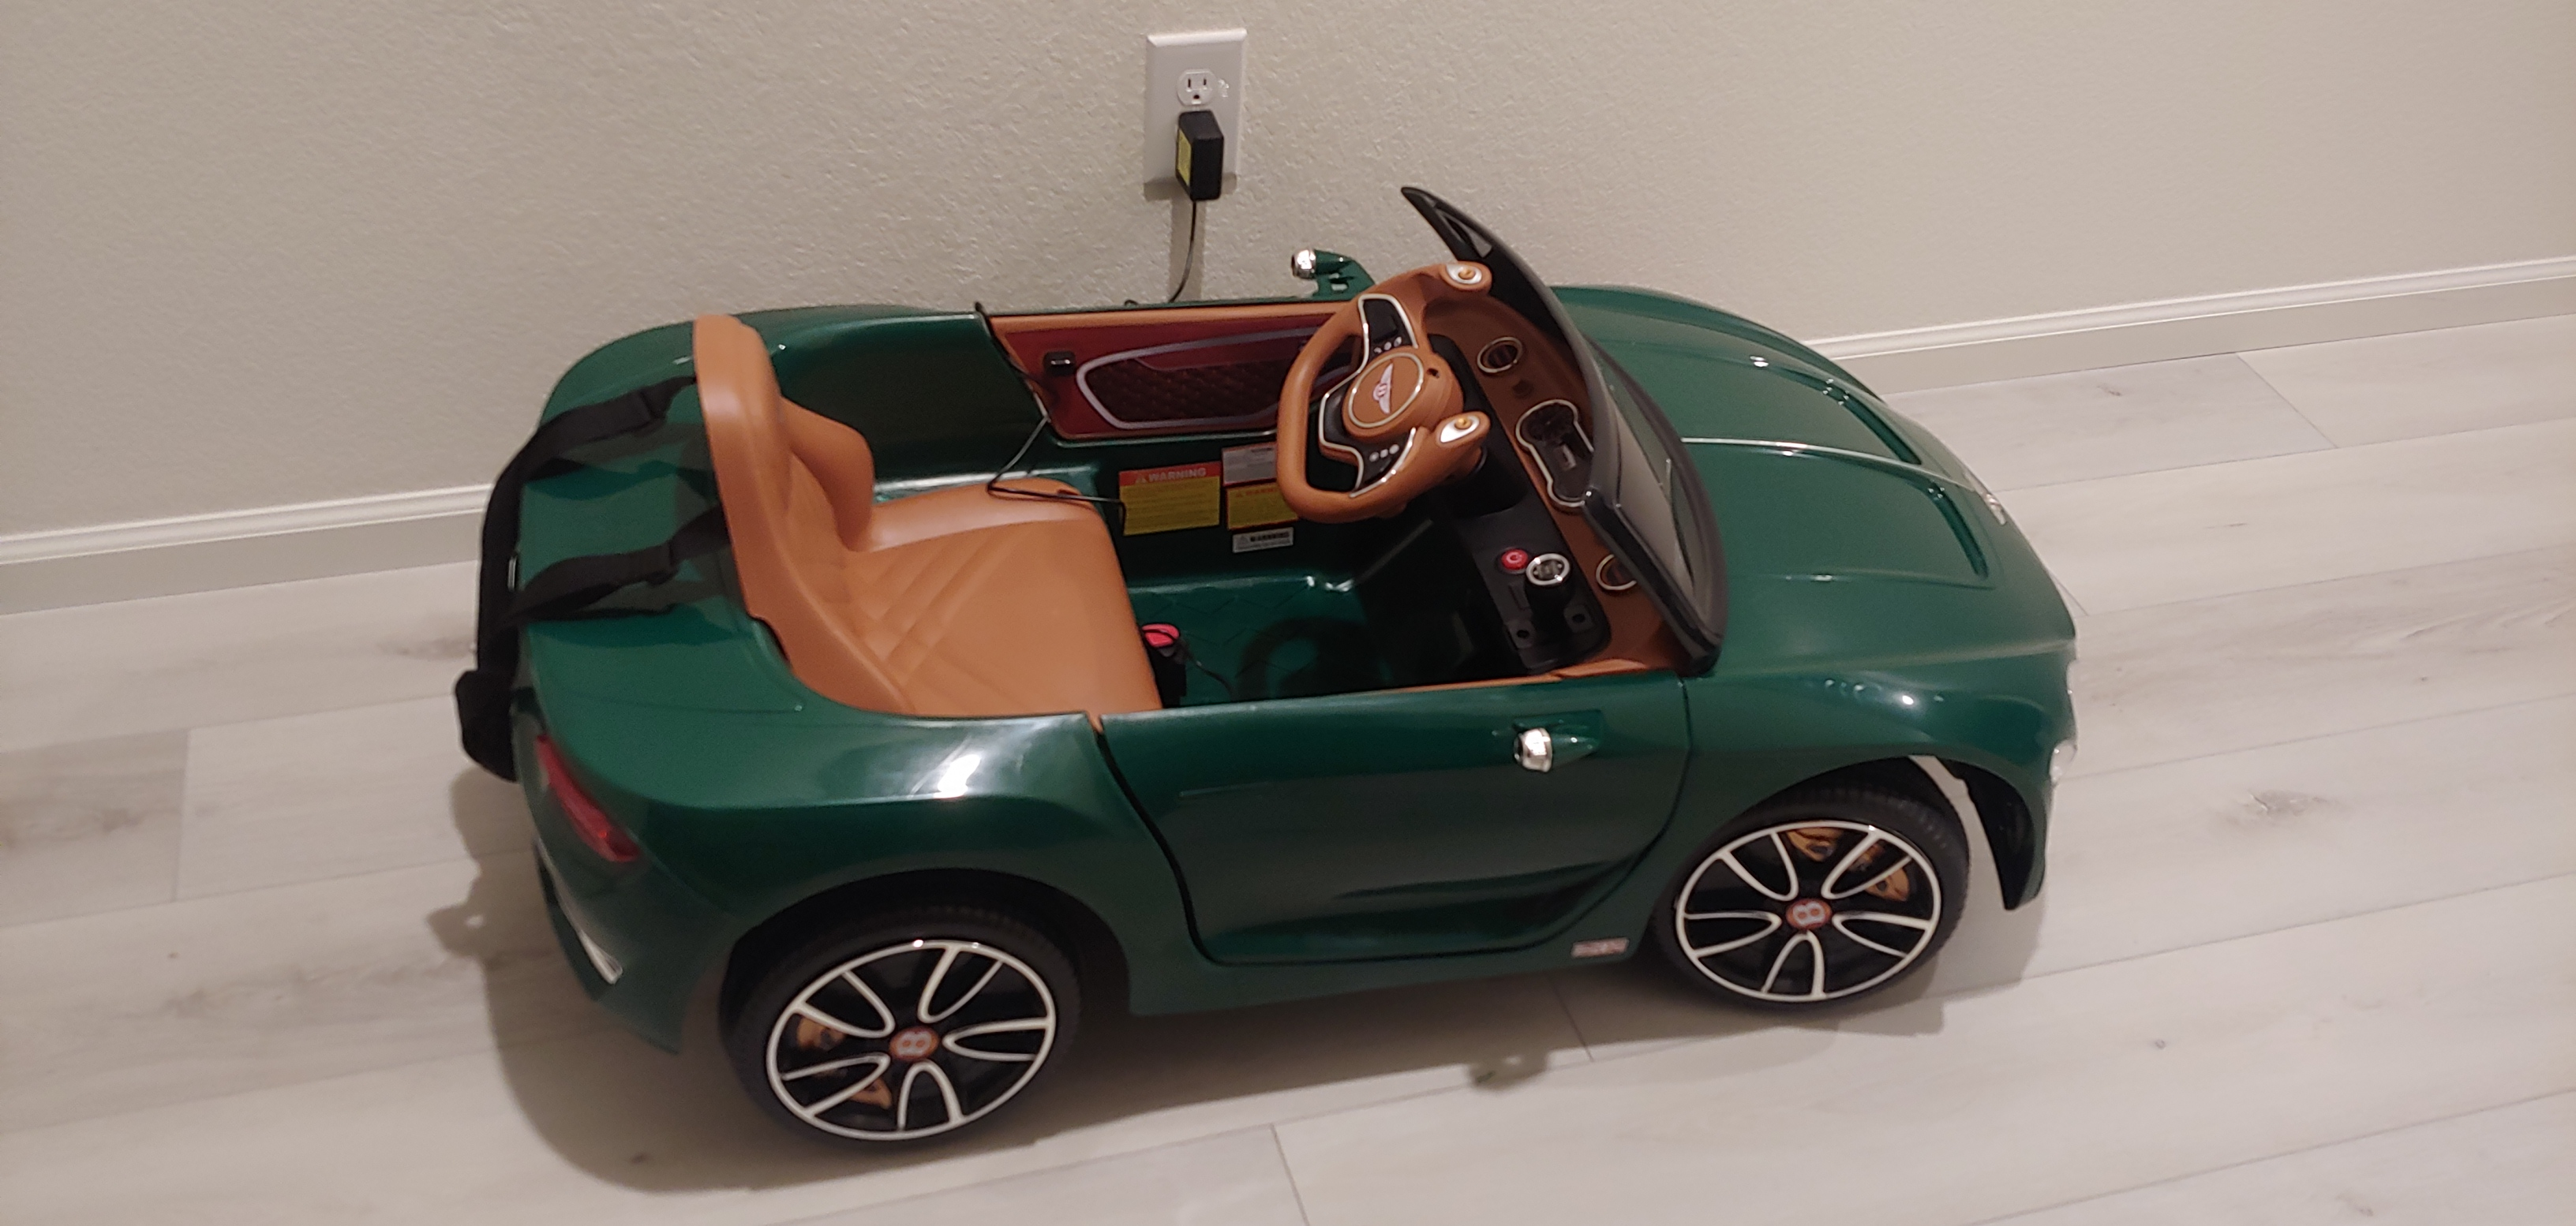 12V Bentley Ride On Car With Remote Control For Kids, Blackish Green photo review